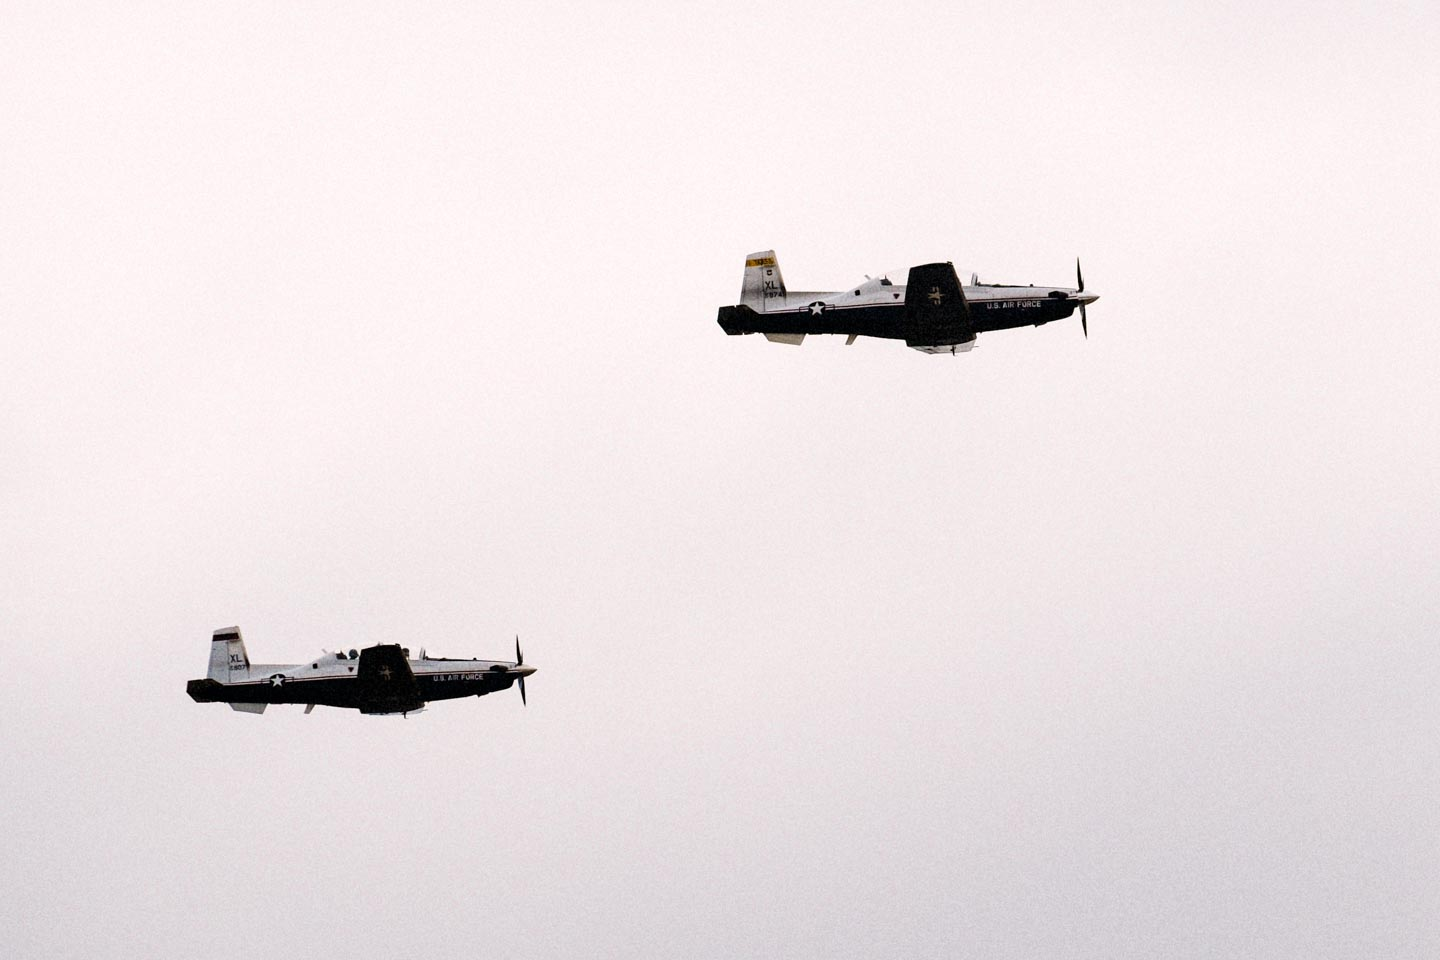 A pair of T-6 planes fly in formation